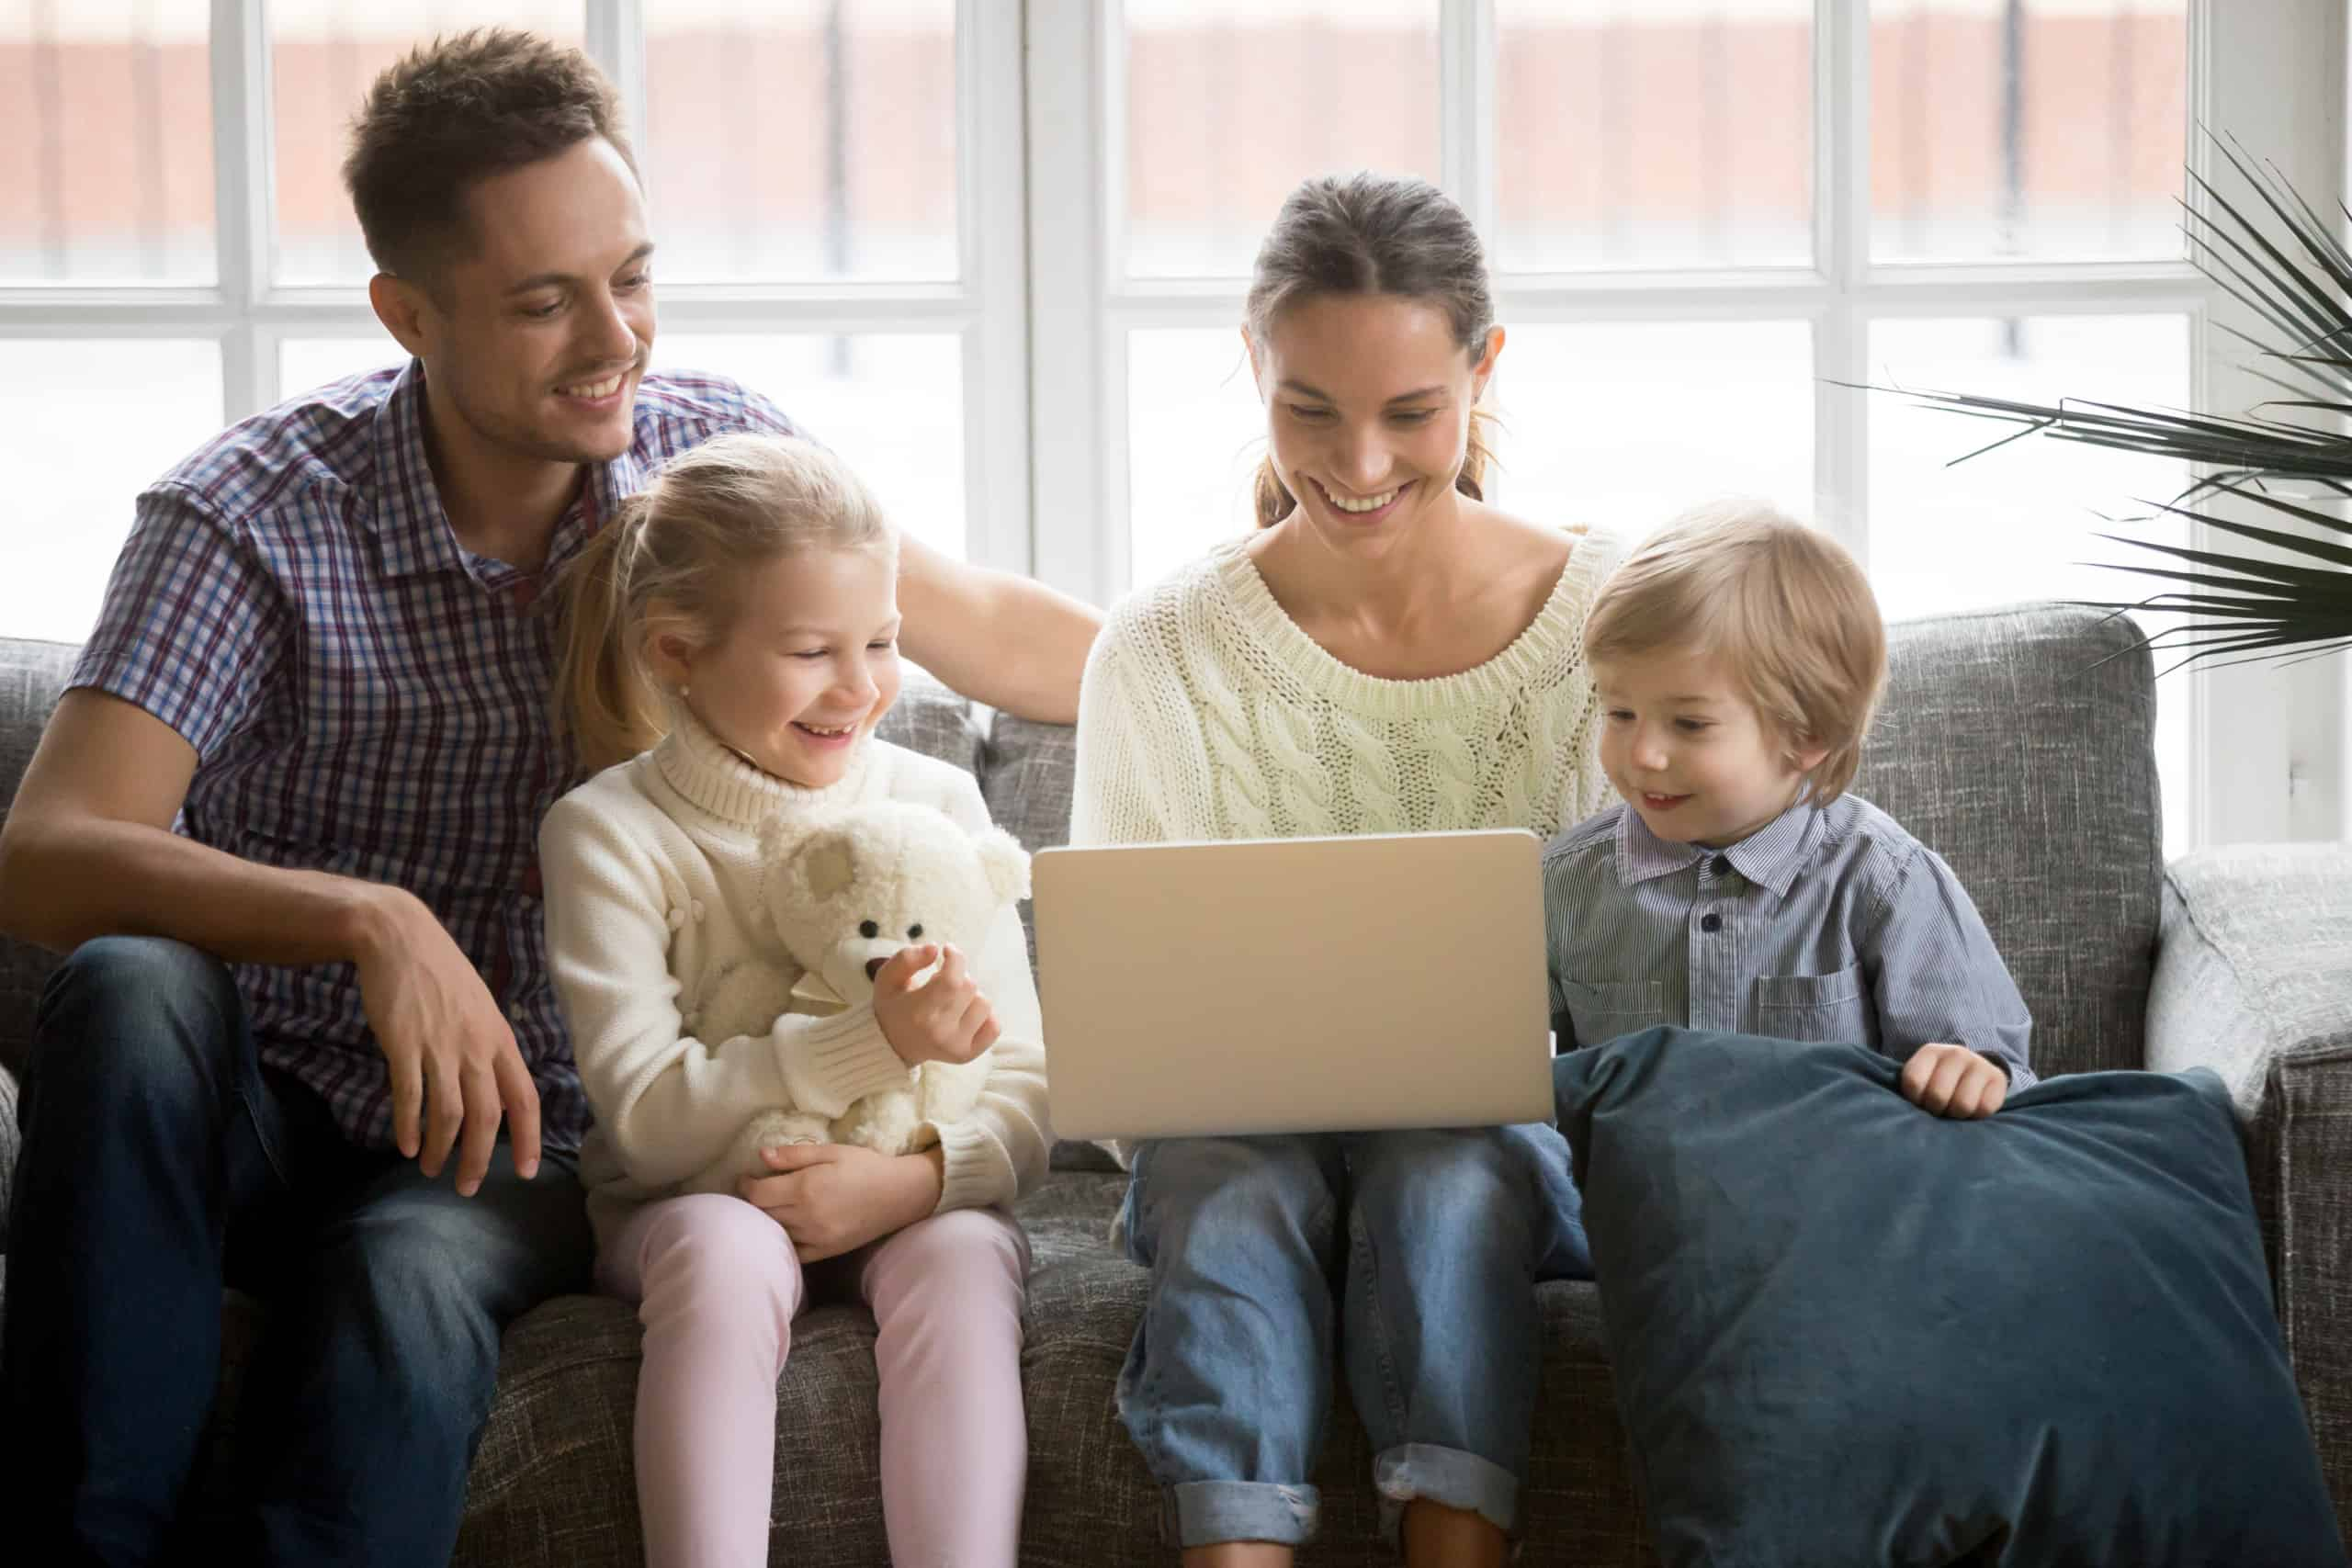 Happy family with children having fun using laptop on sofa